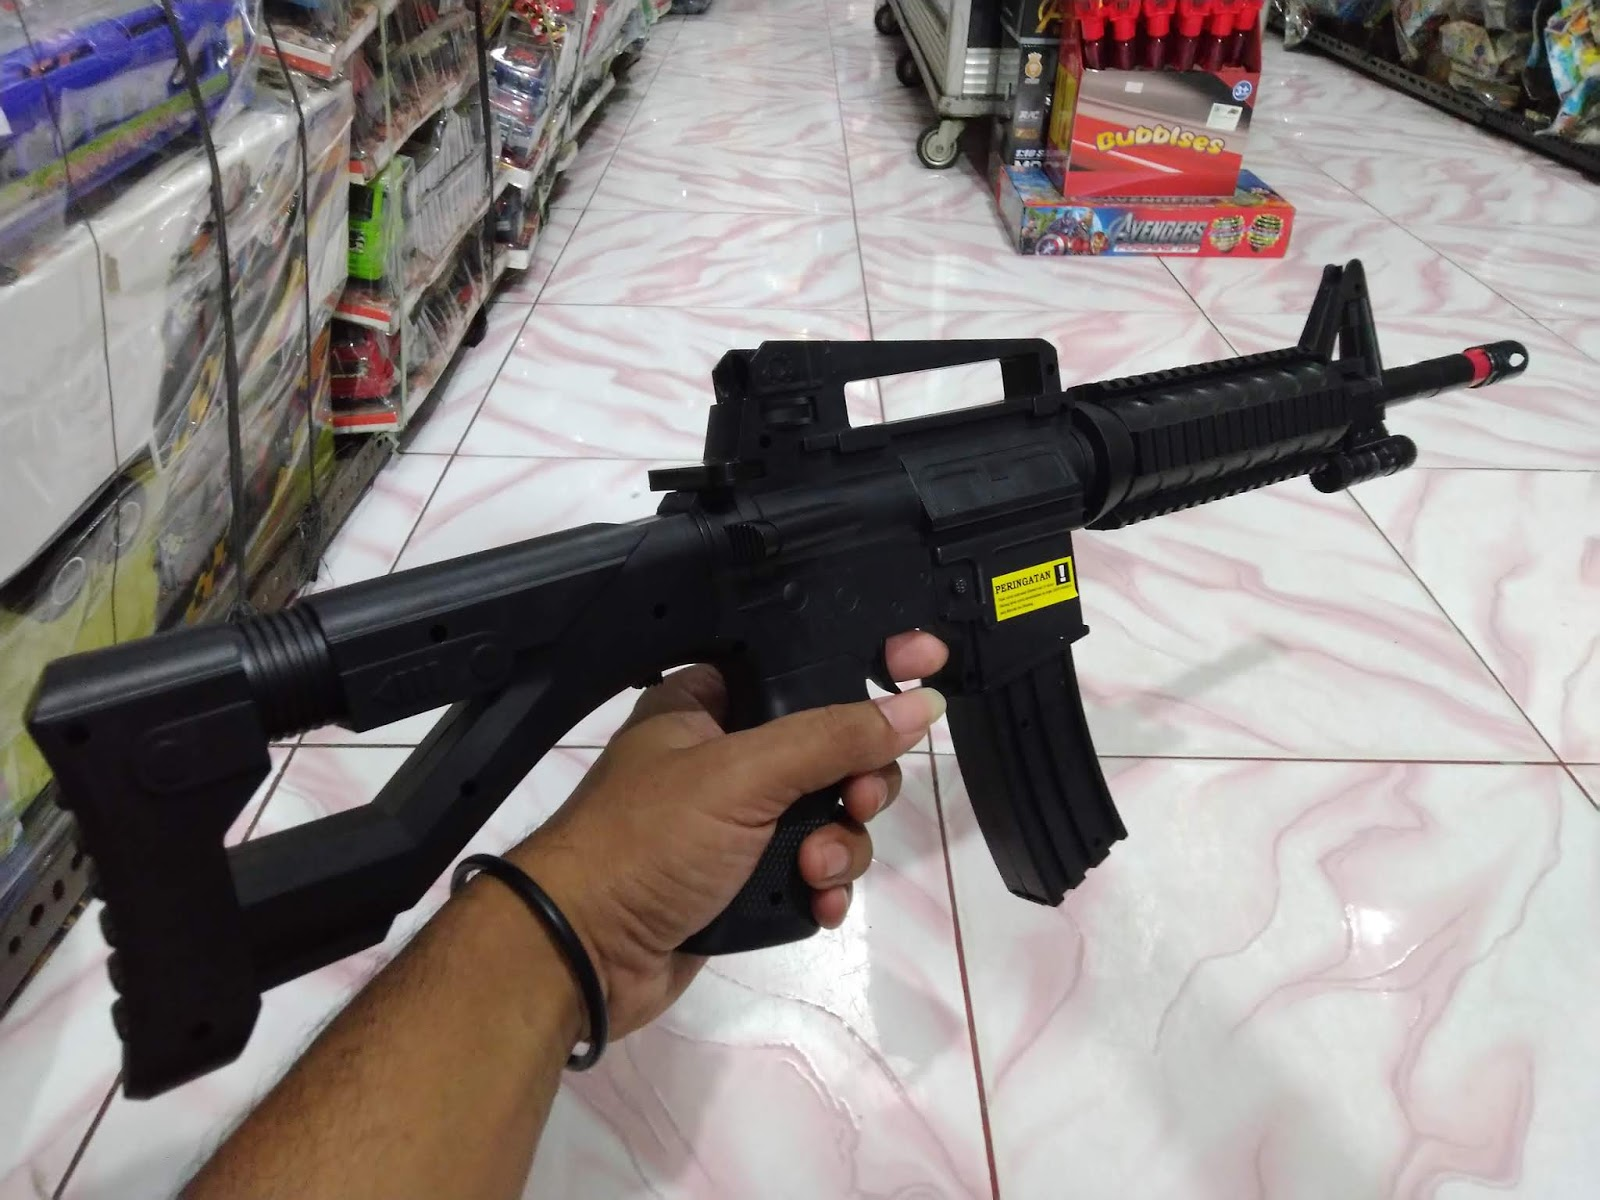 Unit Airsoftgun Spring Cobra M16 - Bang Izal Toy